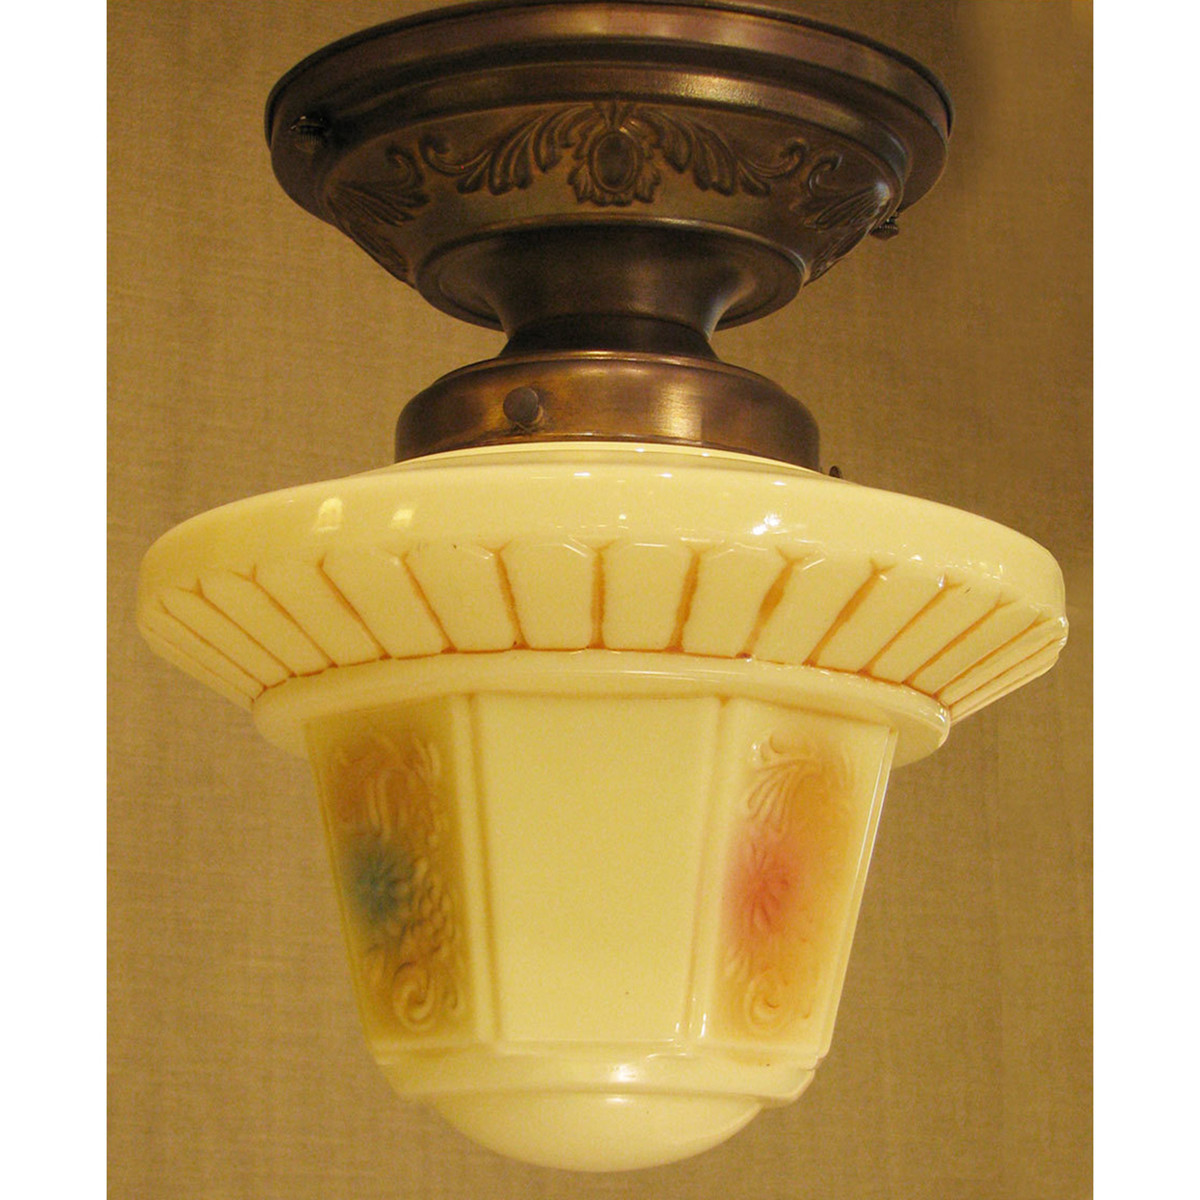 L11327 - Antique Flush Mount Light Fixture with Vaseline Glass